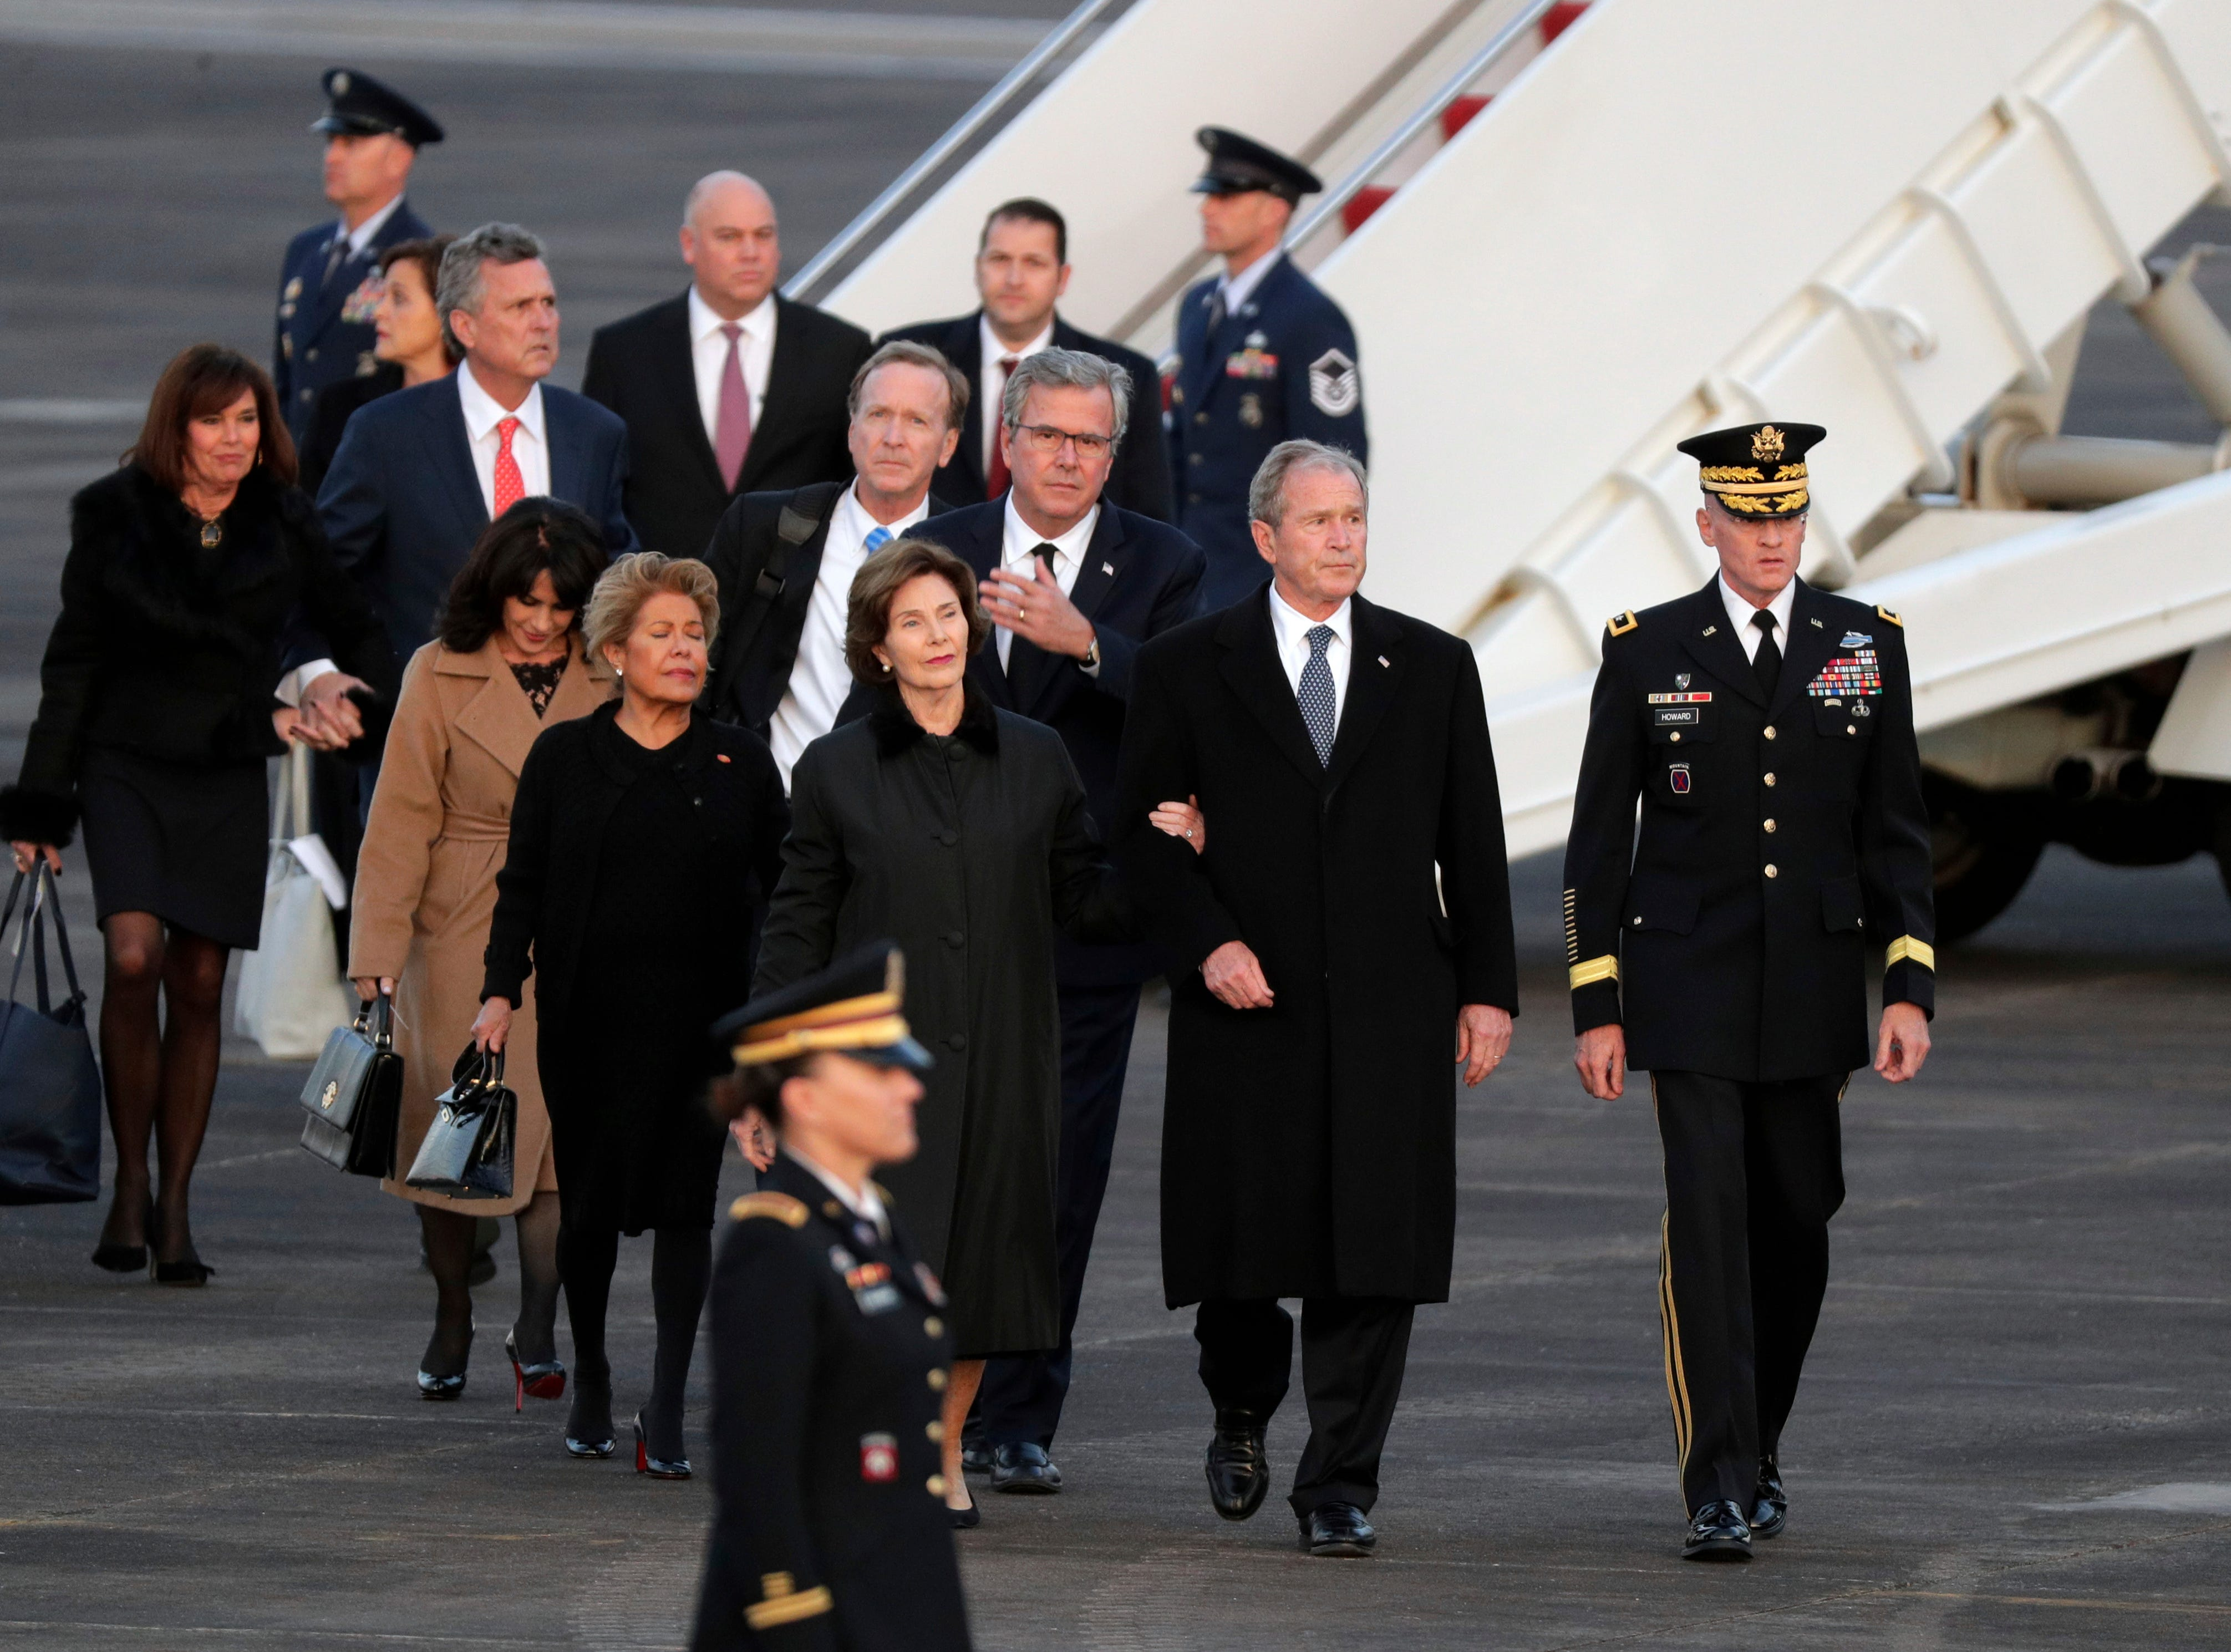 Former President George W. Bush and family members of former President George H.W. Bush walk off Special Air Mission 41 as the casket arrives at Ellington Field Wednesday, Dec. 5, 2018, in Houston.